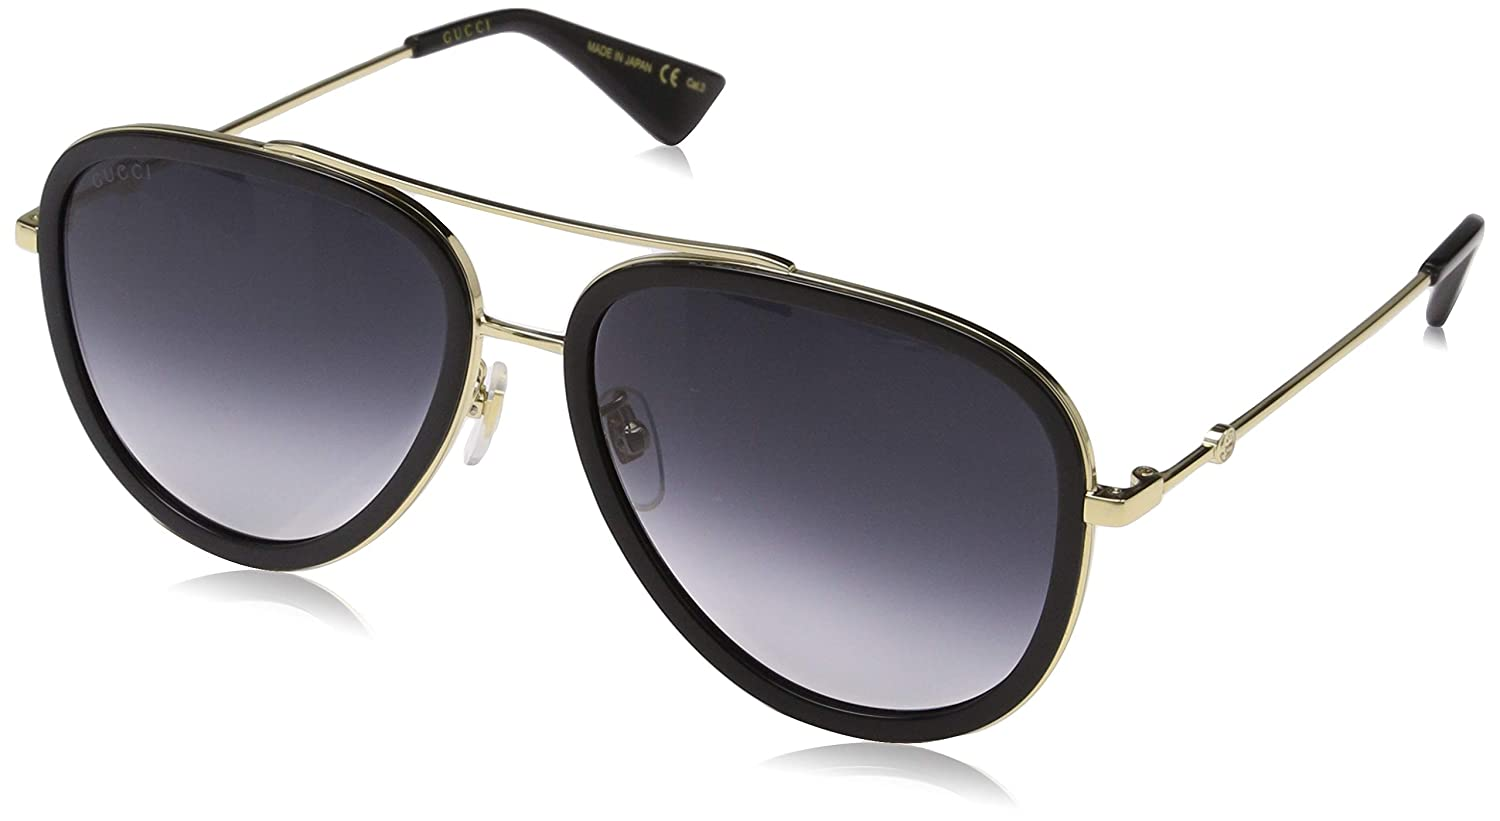 5483c0cf40c Amazon.com  Gucci Grey Gradient Aviator Ladies Sunglasses GG0062S 007 57   Clothing